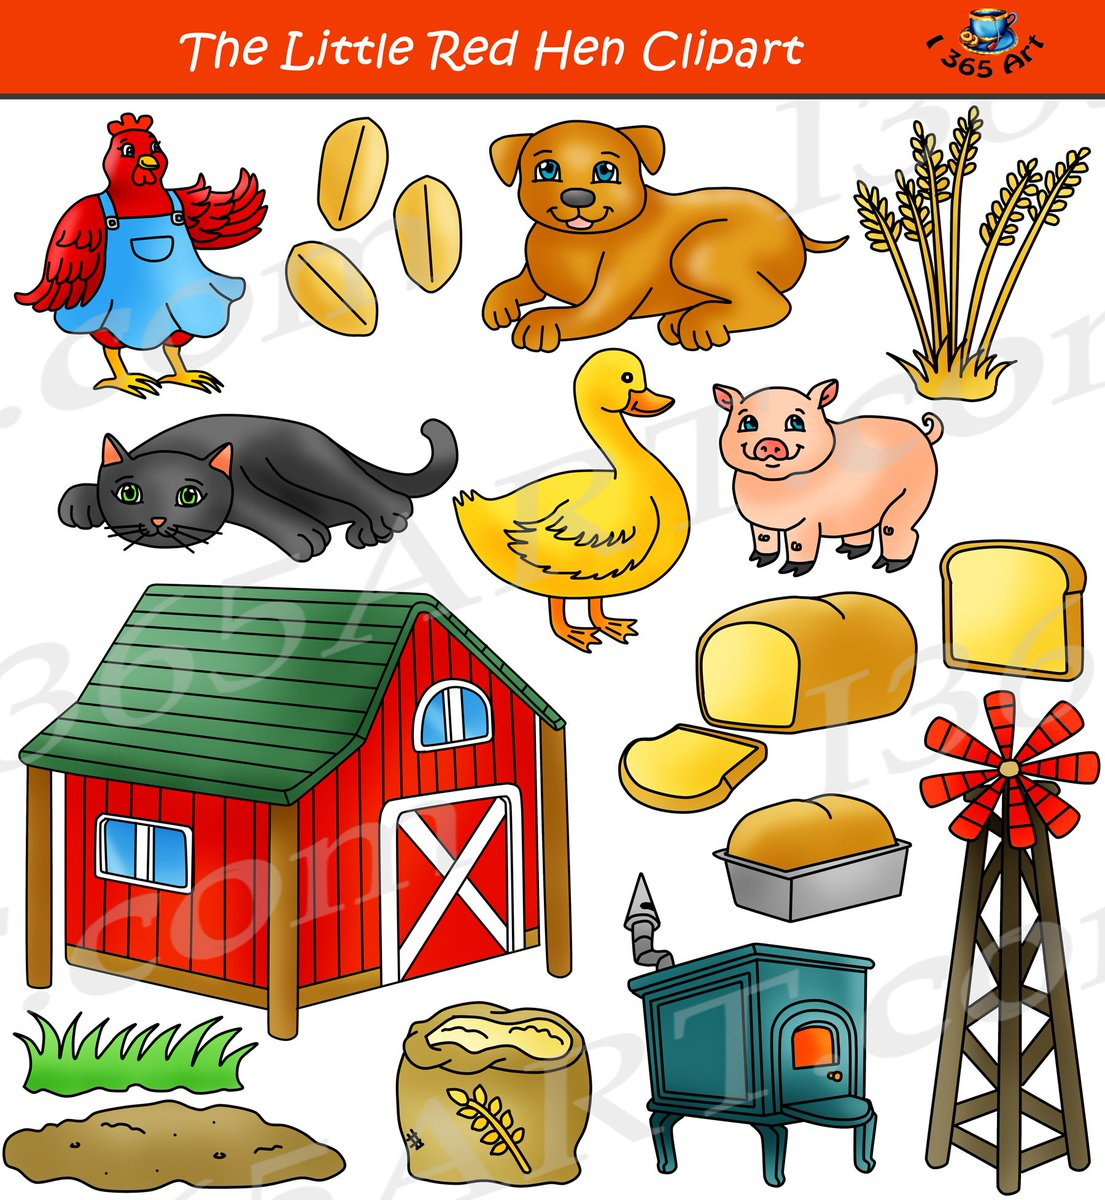 Clipart 4 School On Twitter The Little Red Hen Clipart